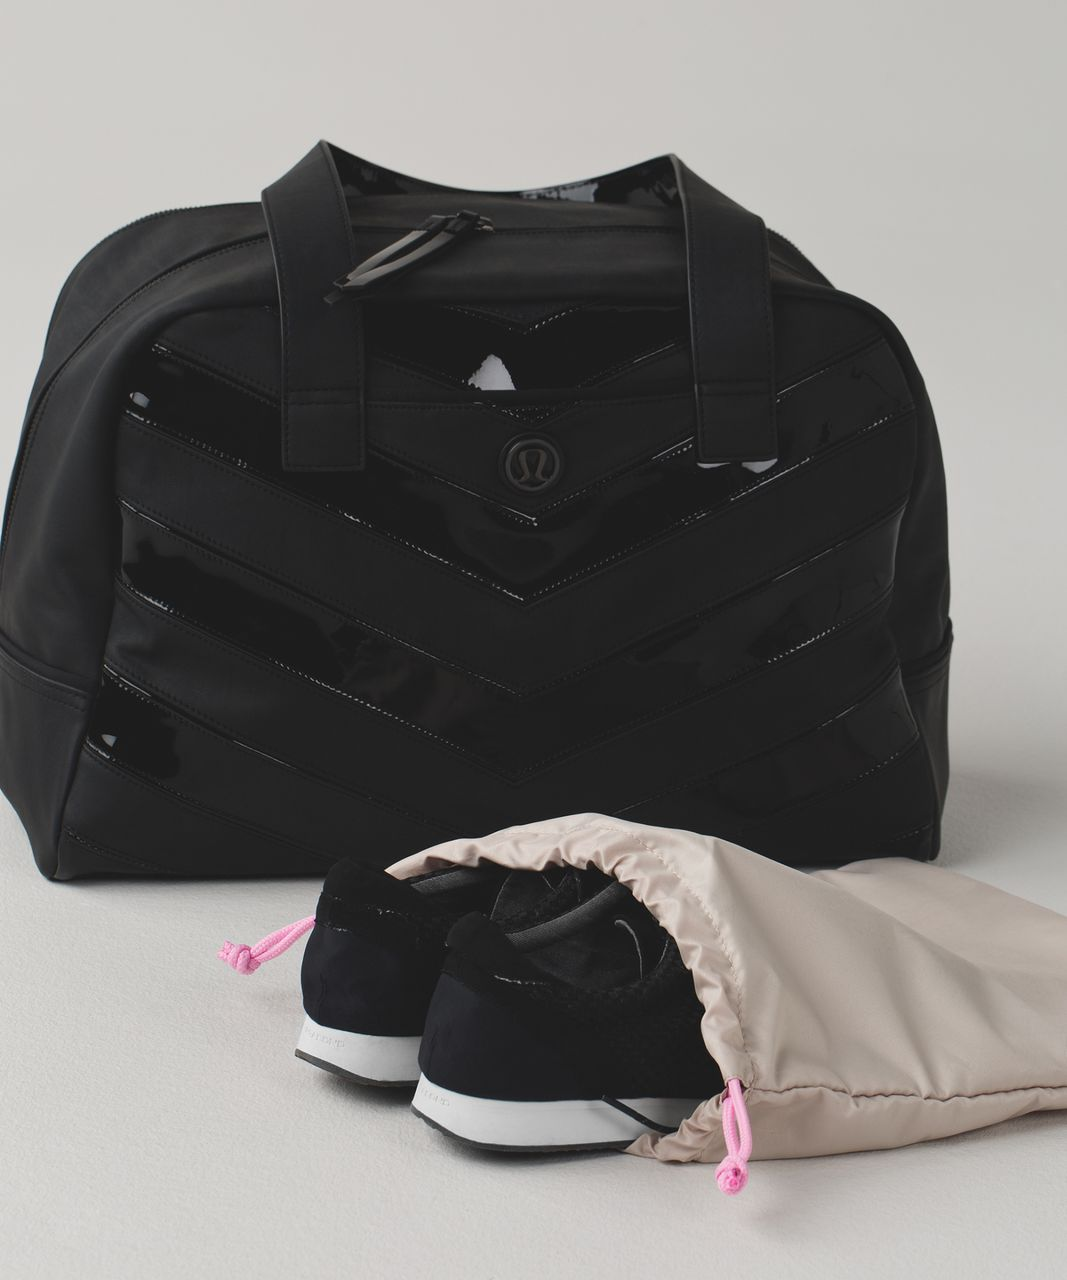 Lululemon Urban Sanctuary Bag - Black